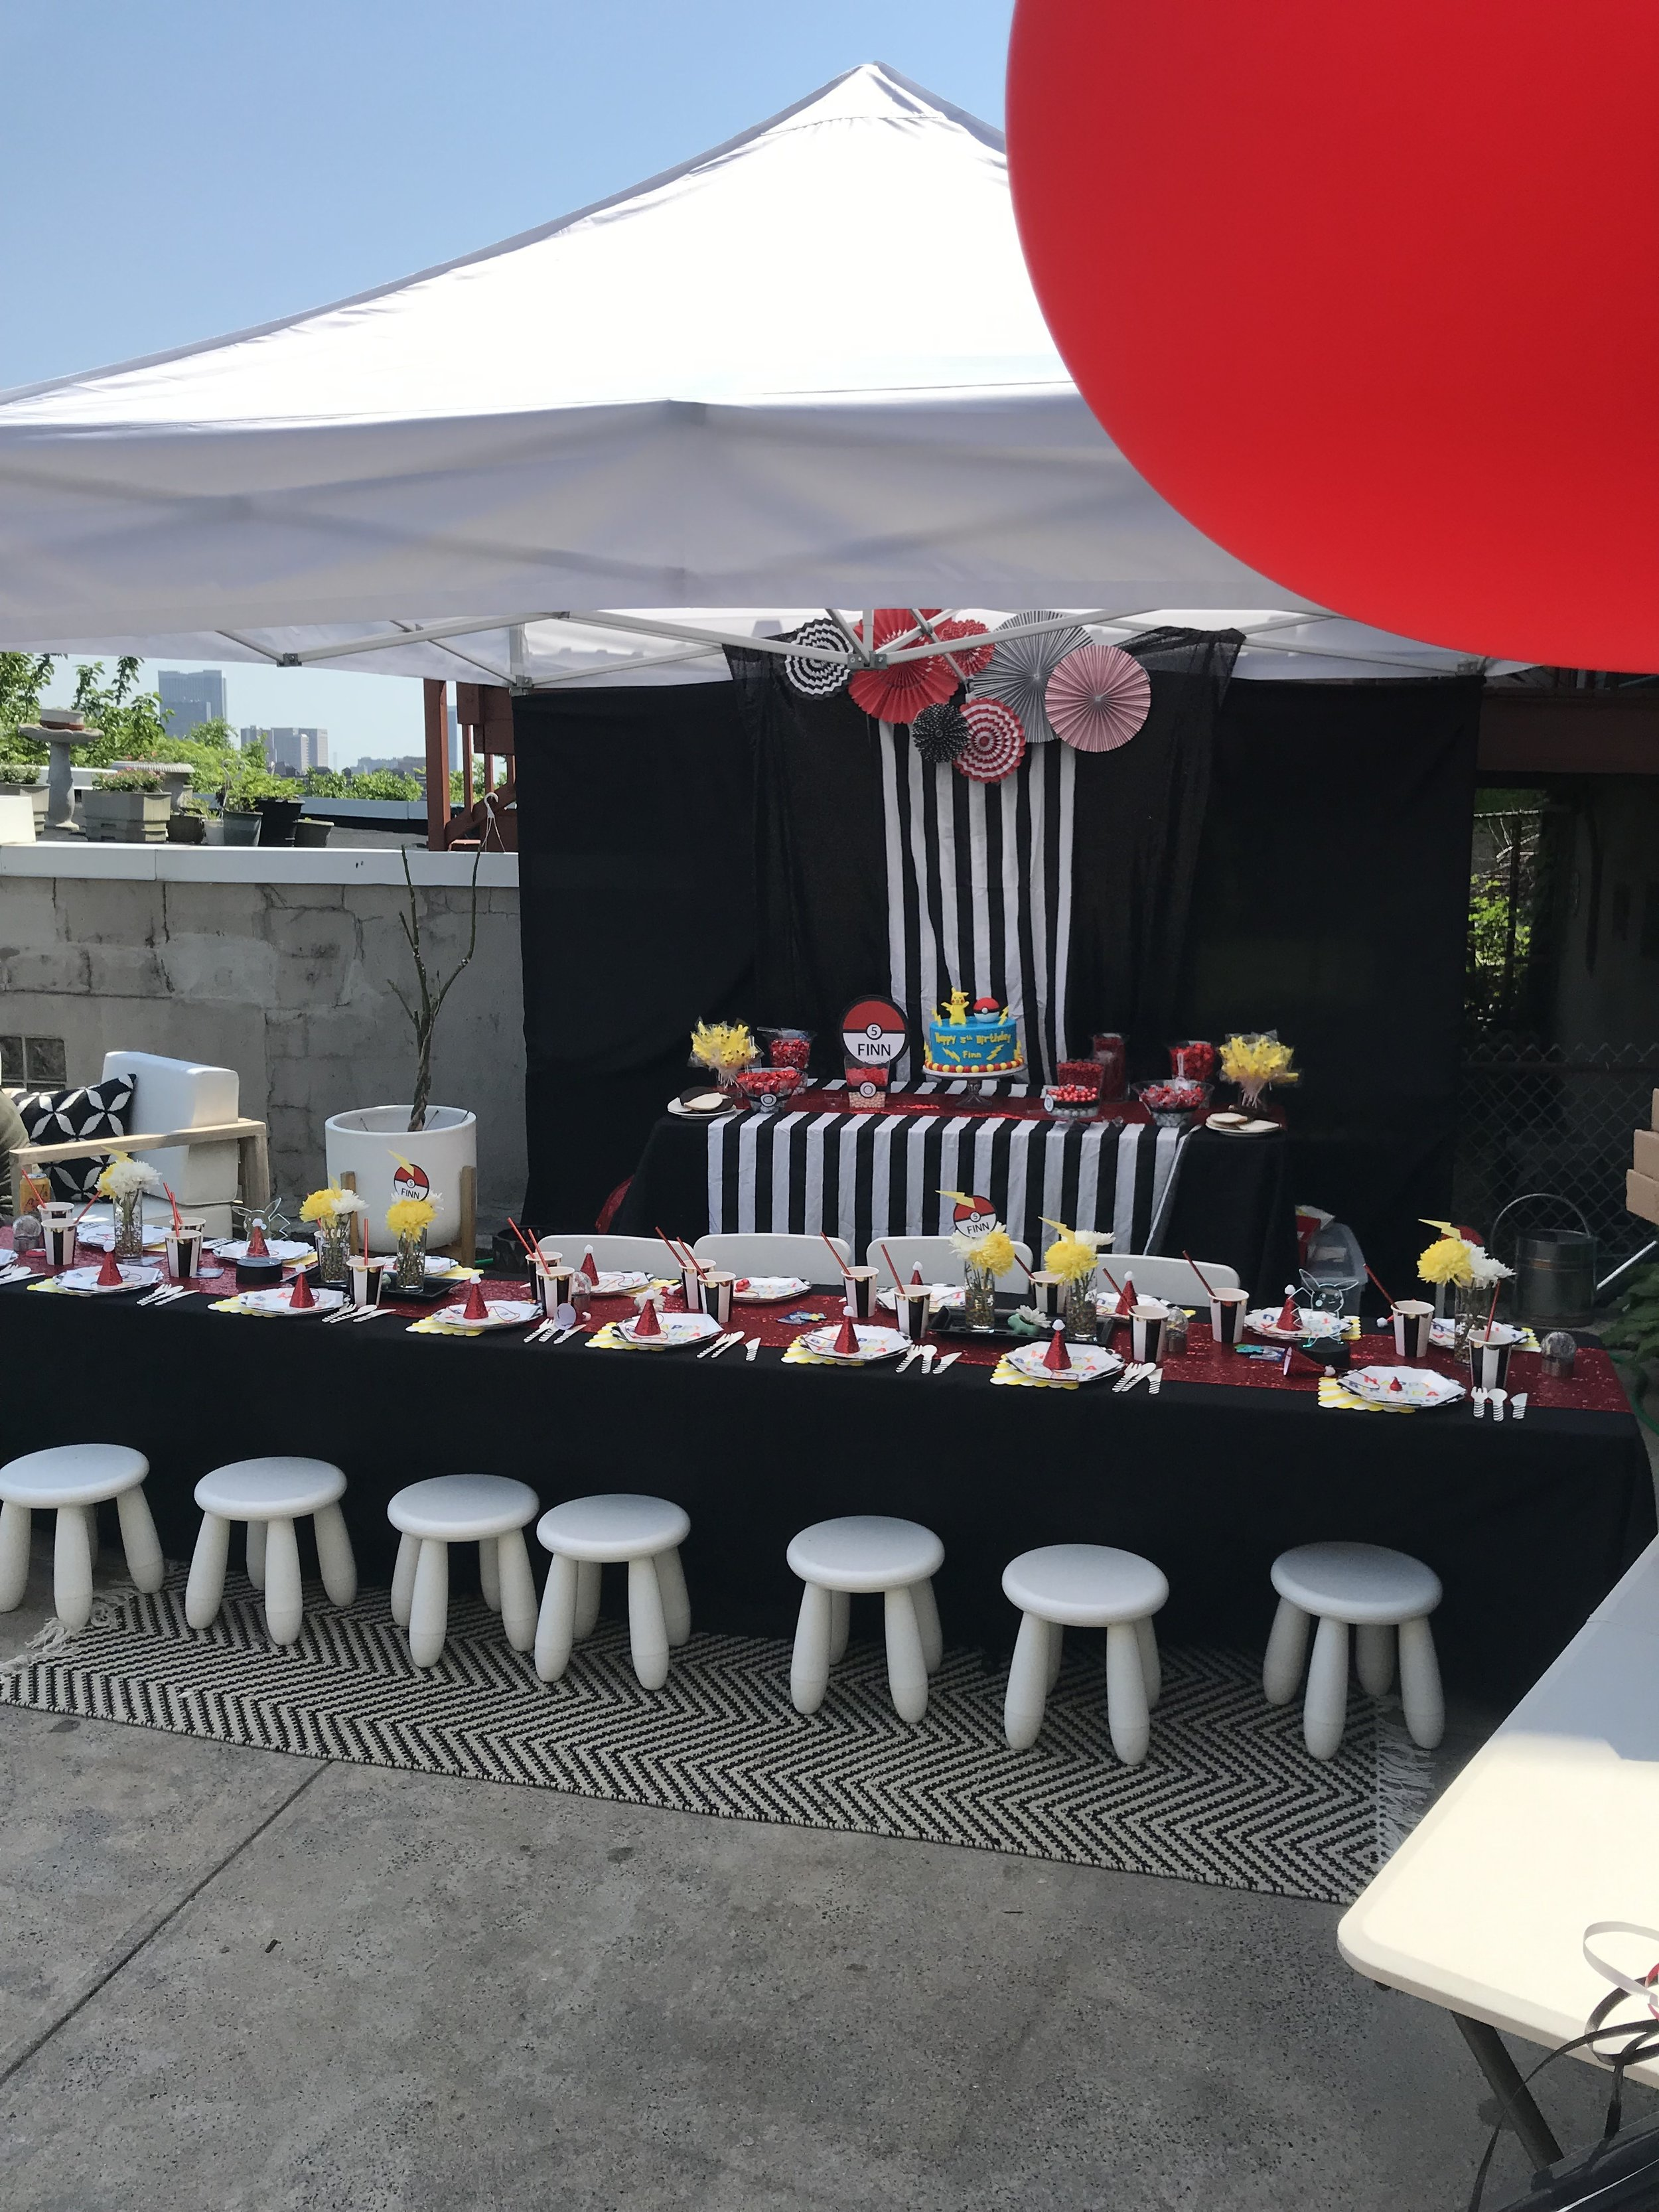 Popseri Tabletop & Dessert Table packages -  Styled by Kristy F in Jersey City, NJ